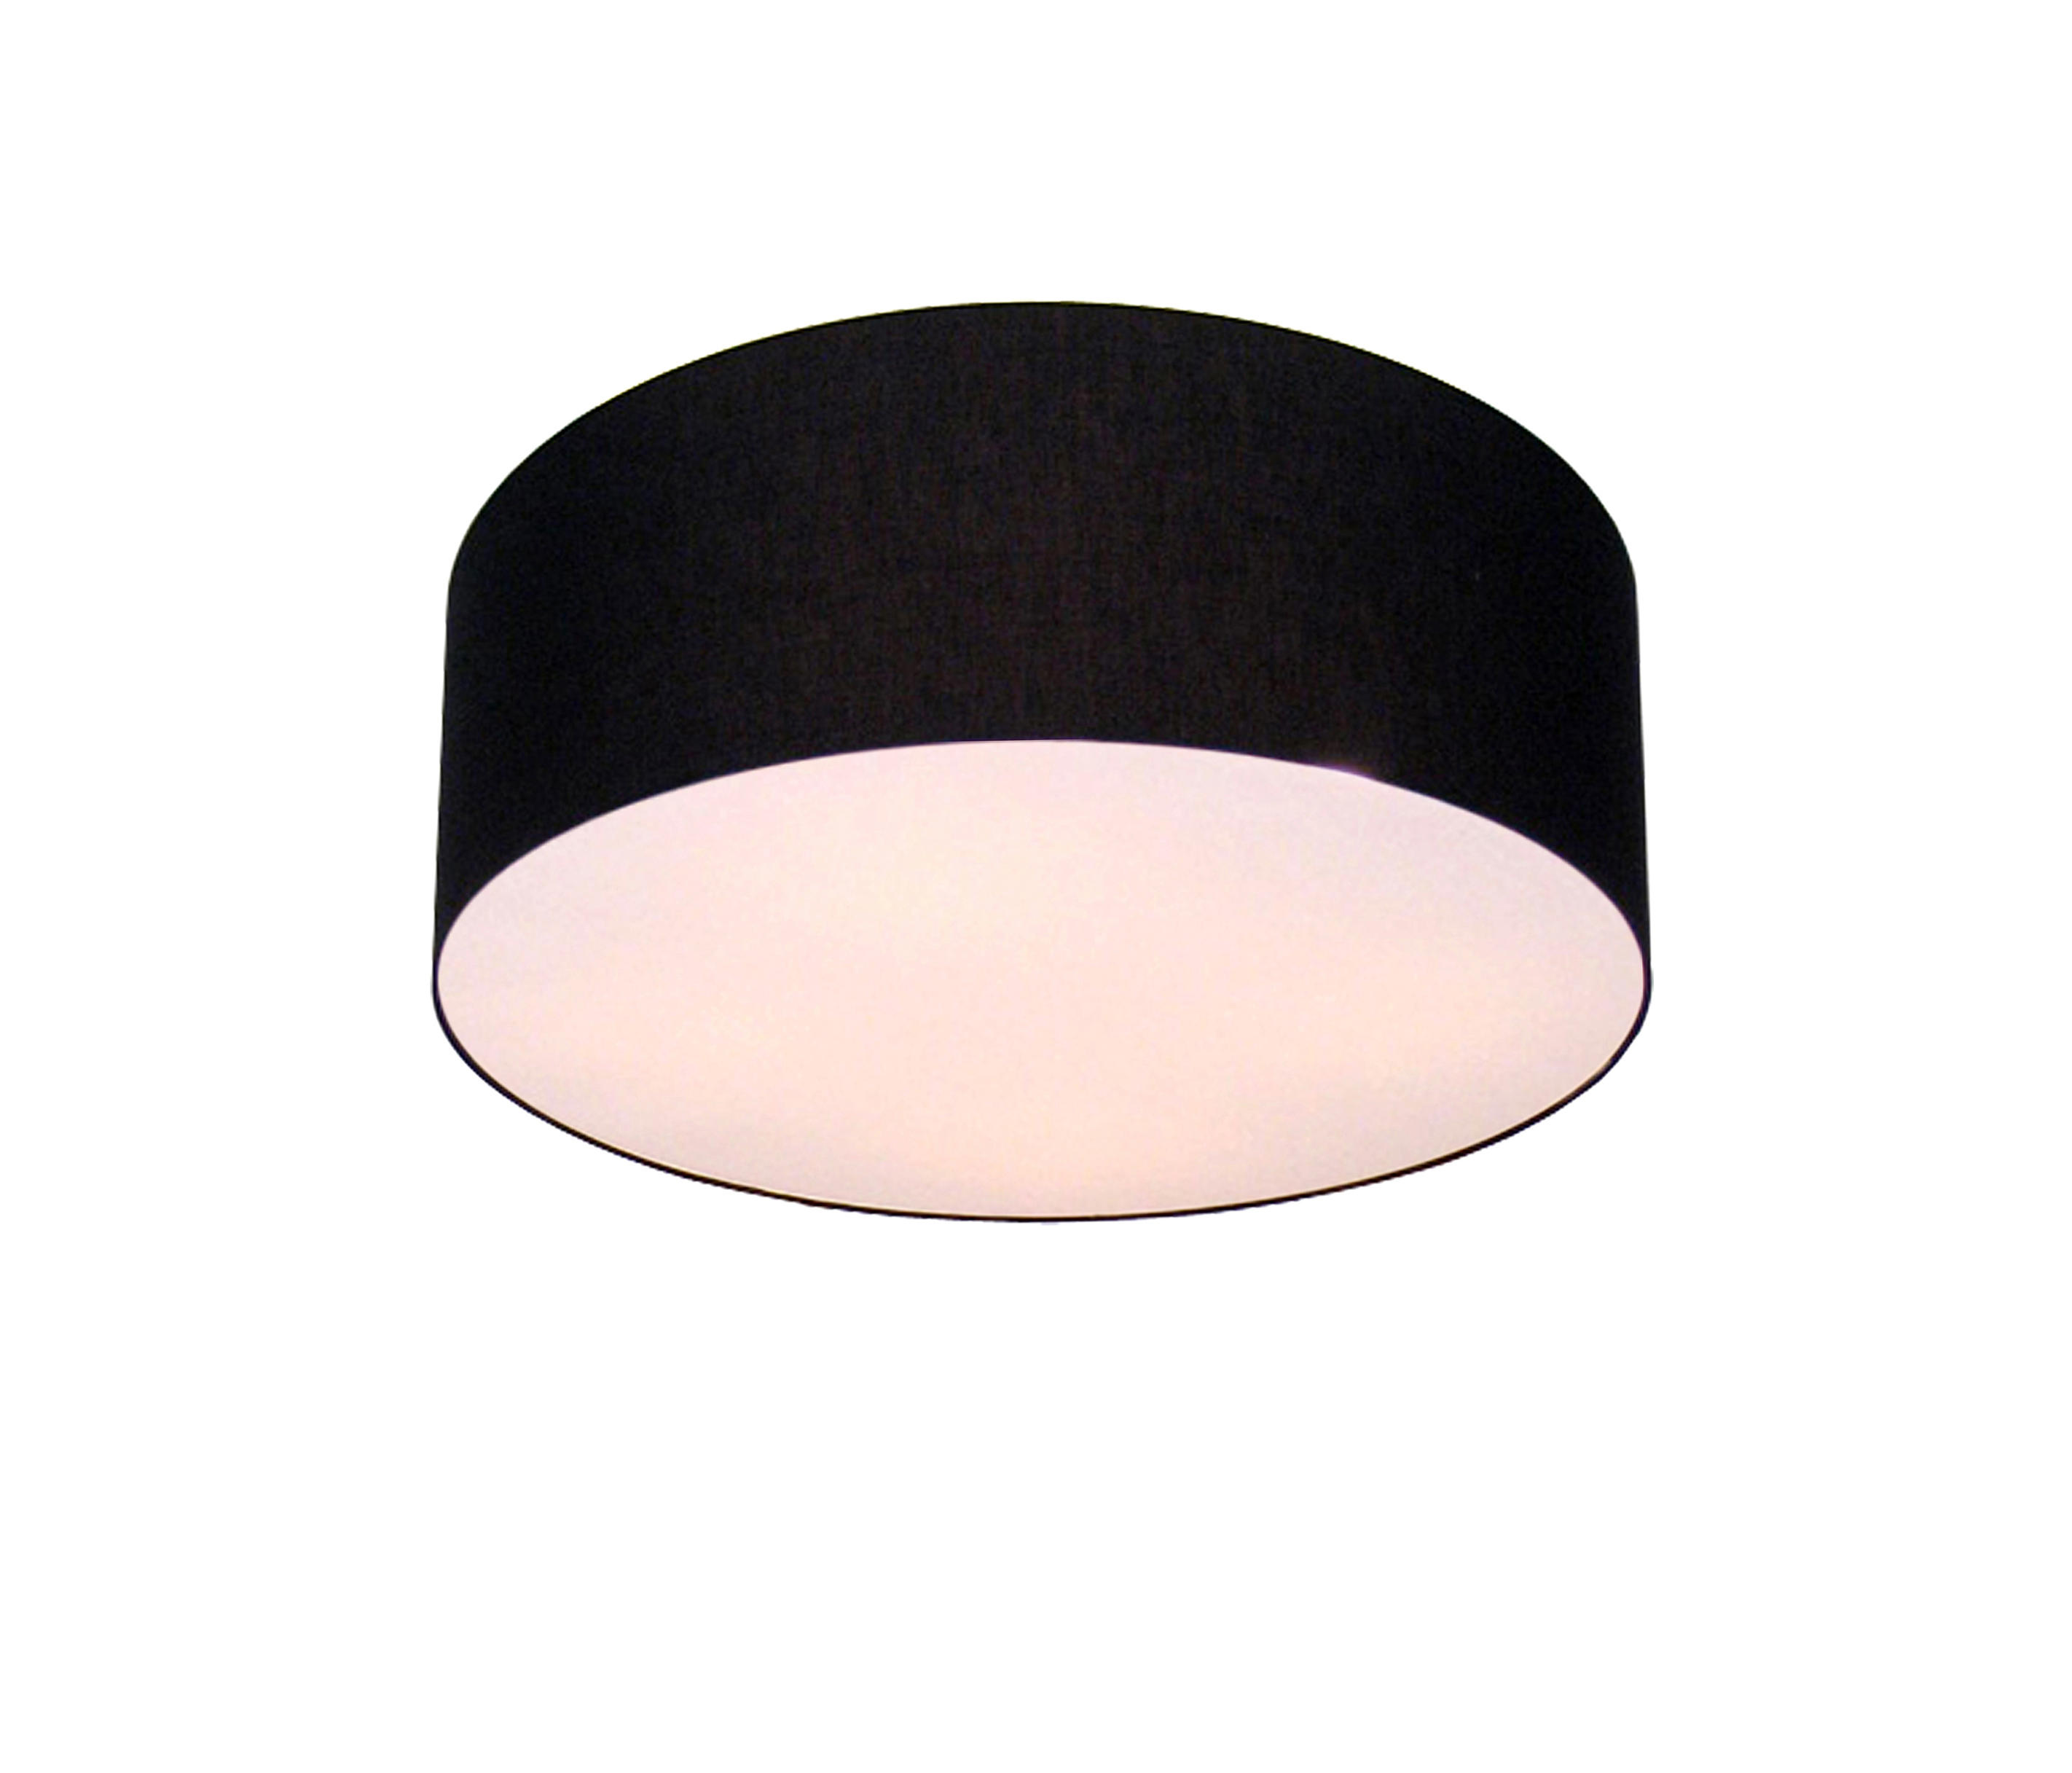 Circus Pl Ceiling Lights From Contardi Lighting Architonic